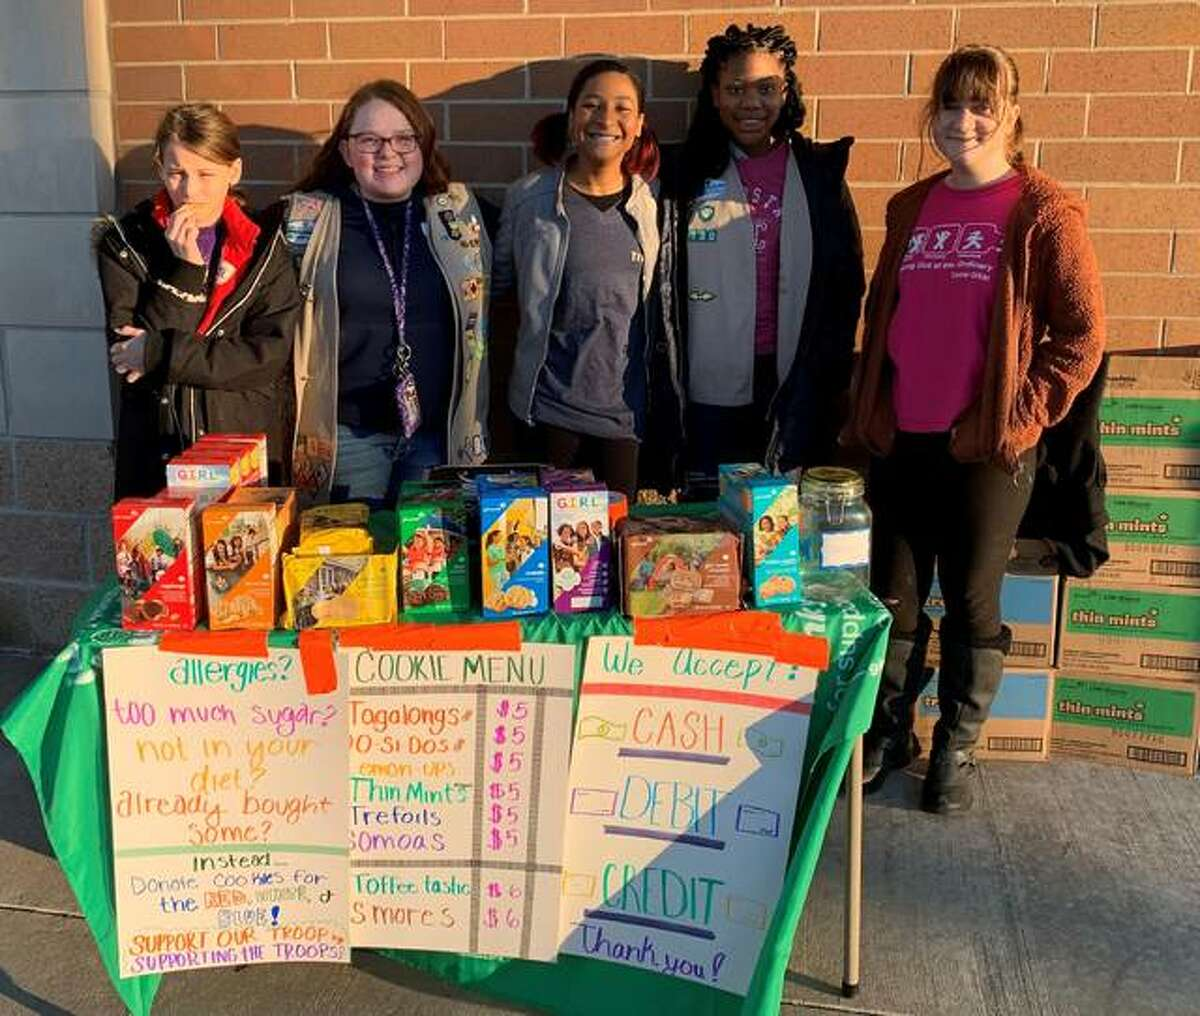 Members of Alton Girl Scouts Troop 130 - from left, KayLynn B., KayLee M., Samara H., Serena B. and Bethany N. - offer Girl Scout cookies at a recent sales booth. Local Girl Scouts are taking cookie orders through Jan. 26 and are planning cookie booths in February and March.